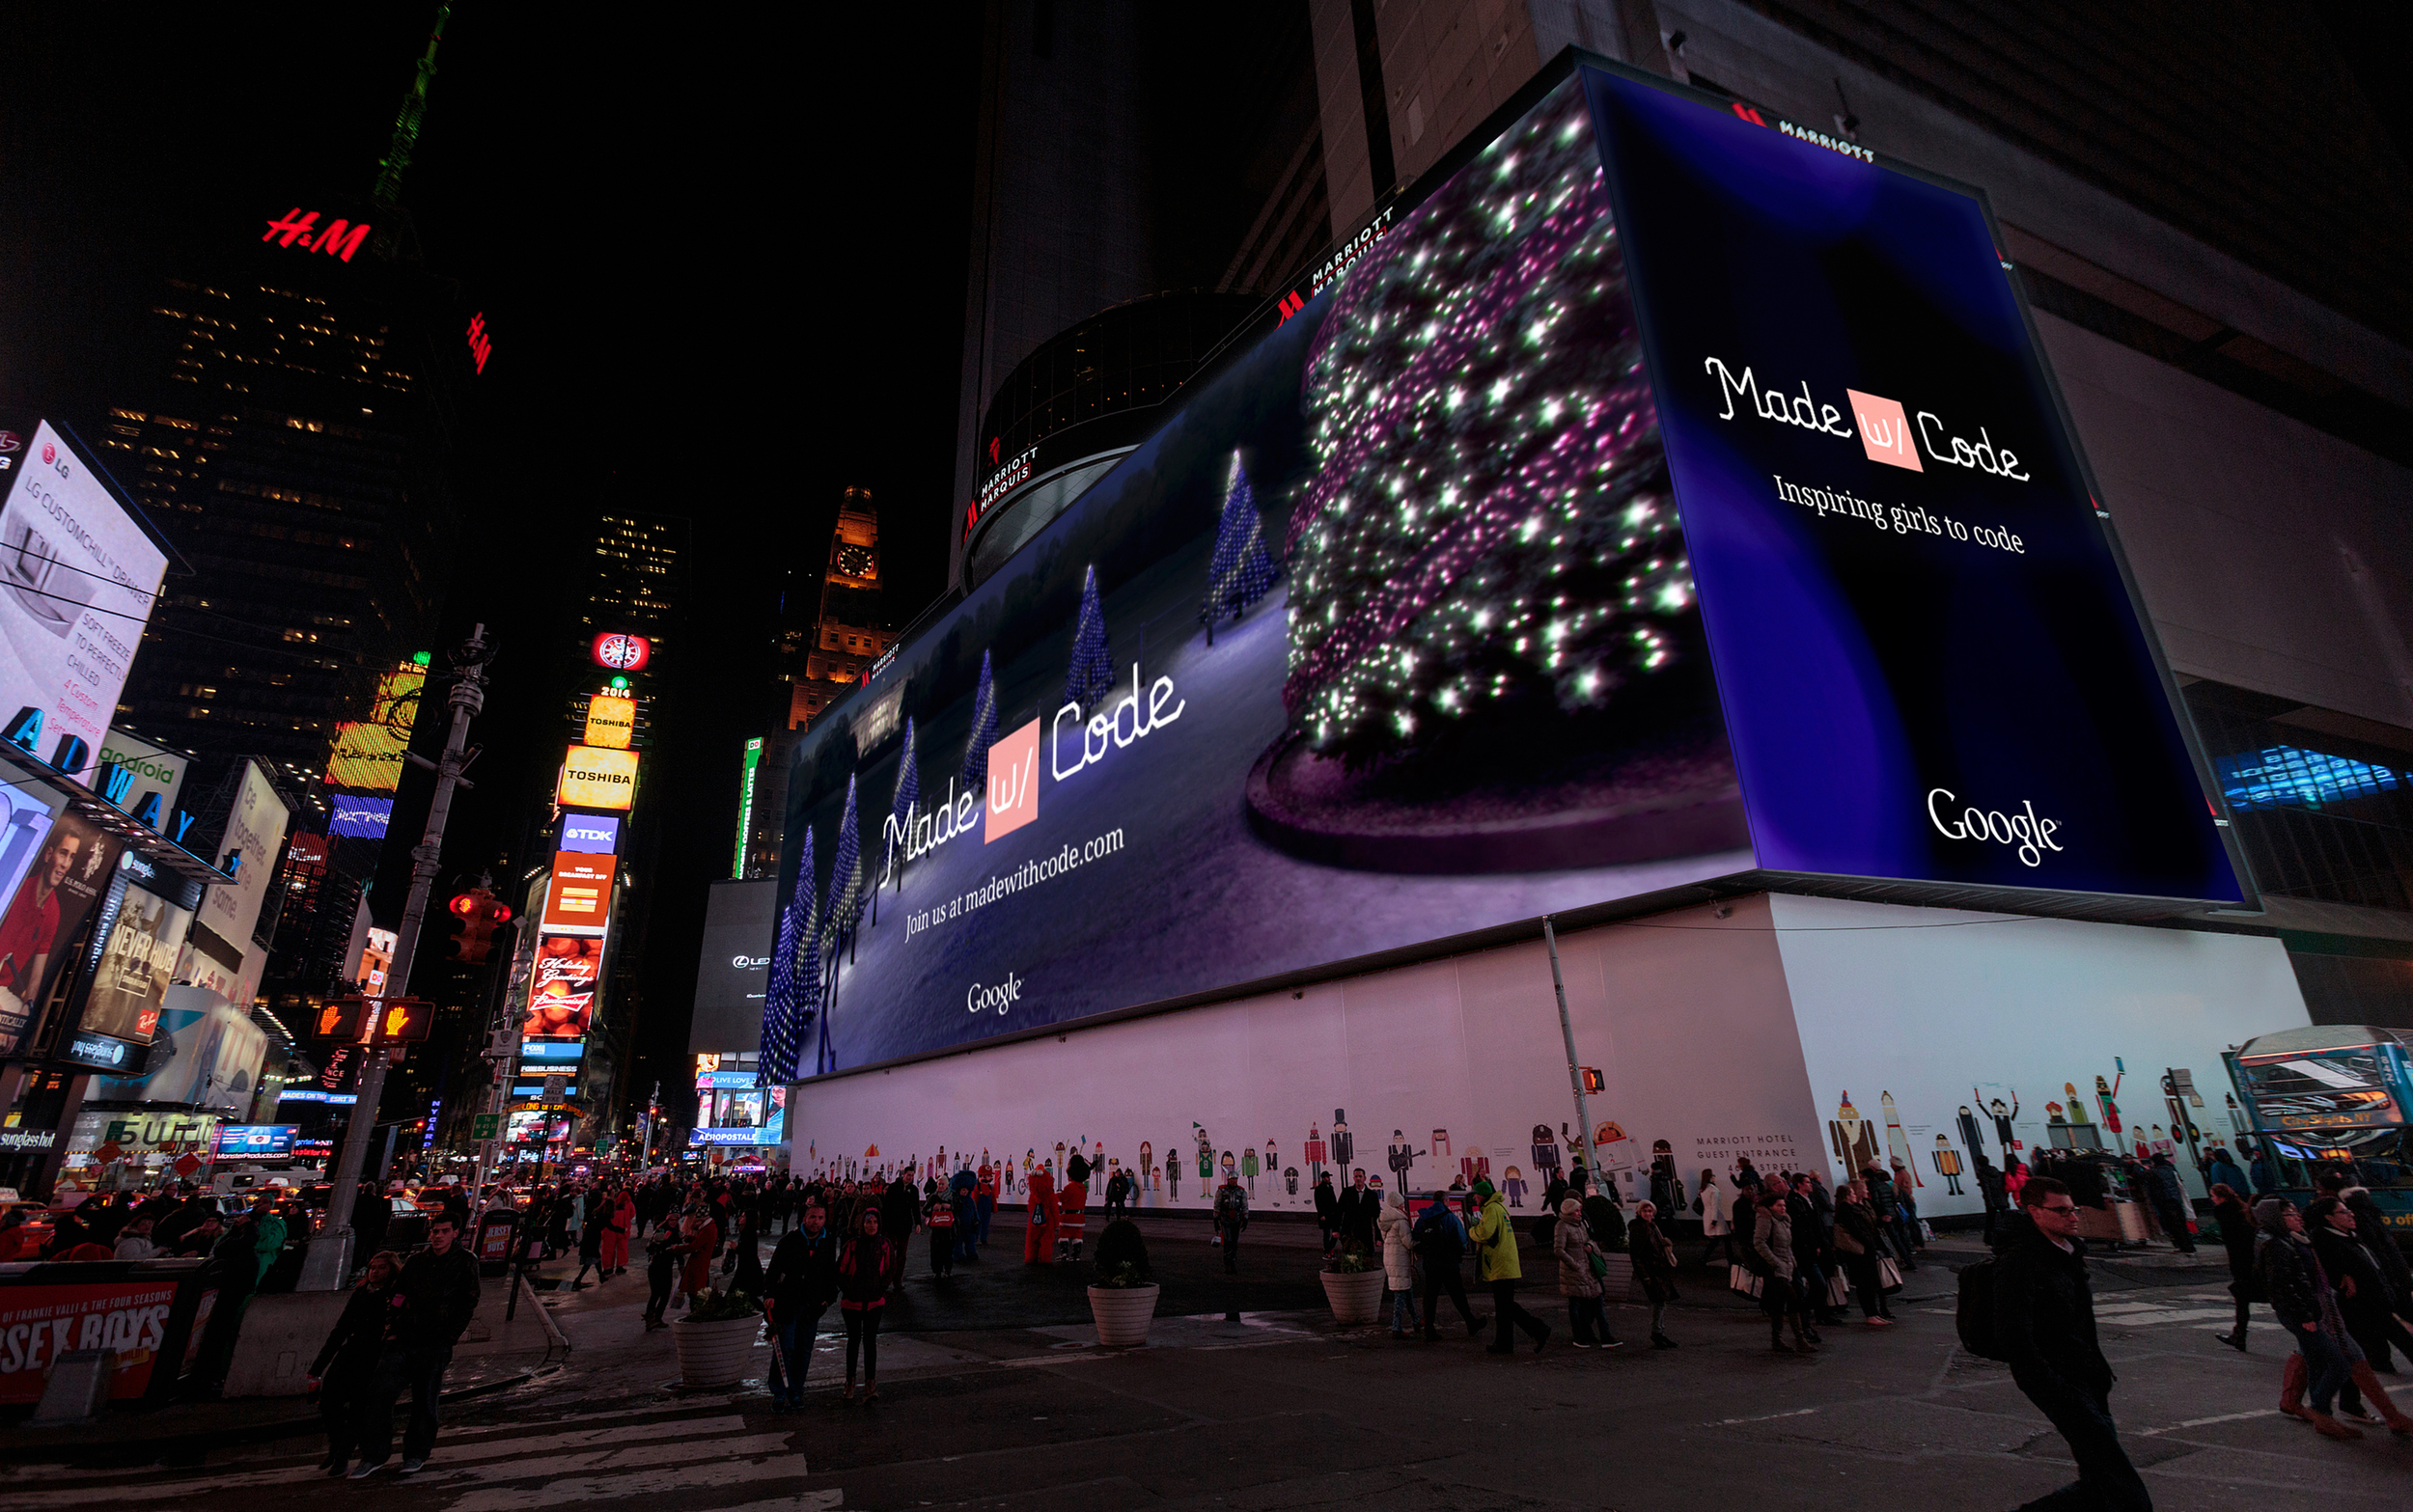 We promoted the project on the largest digital billboard in Times Square